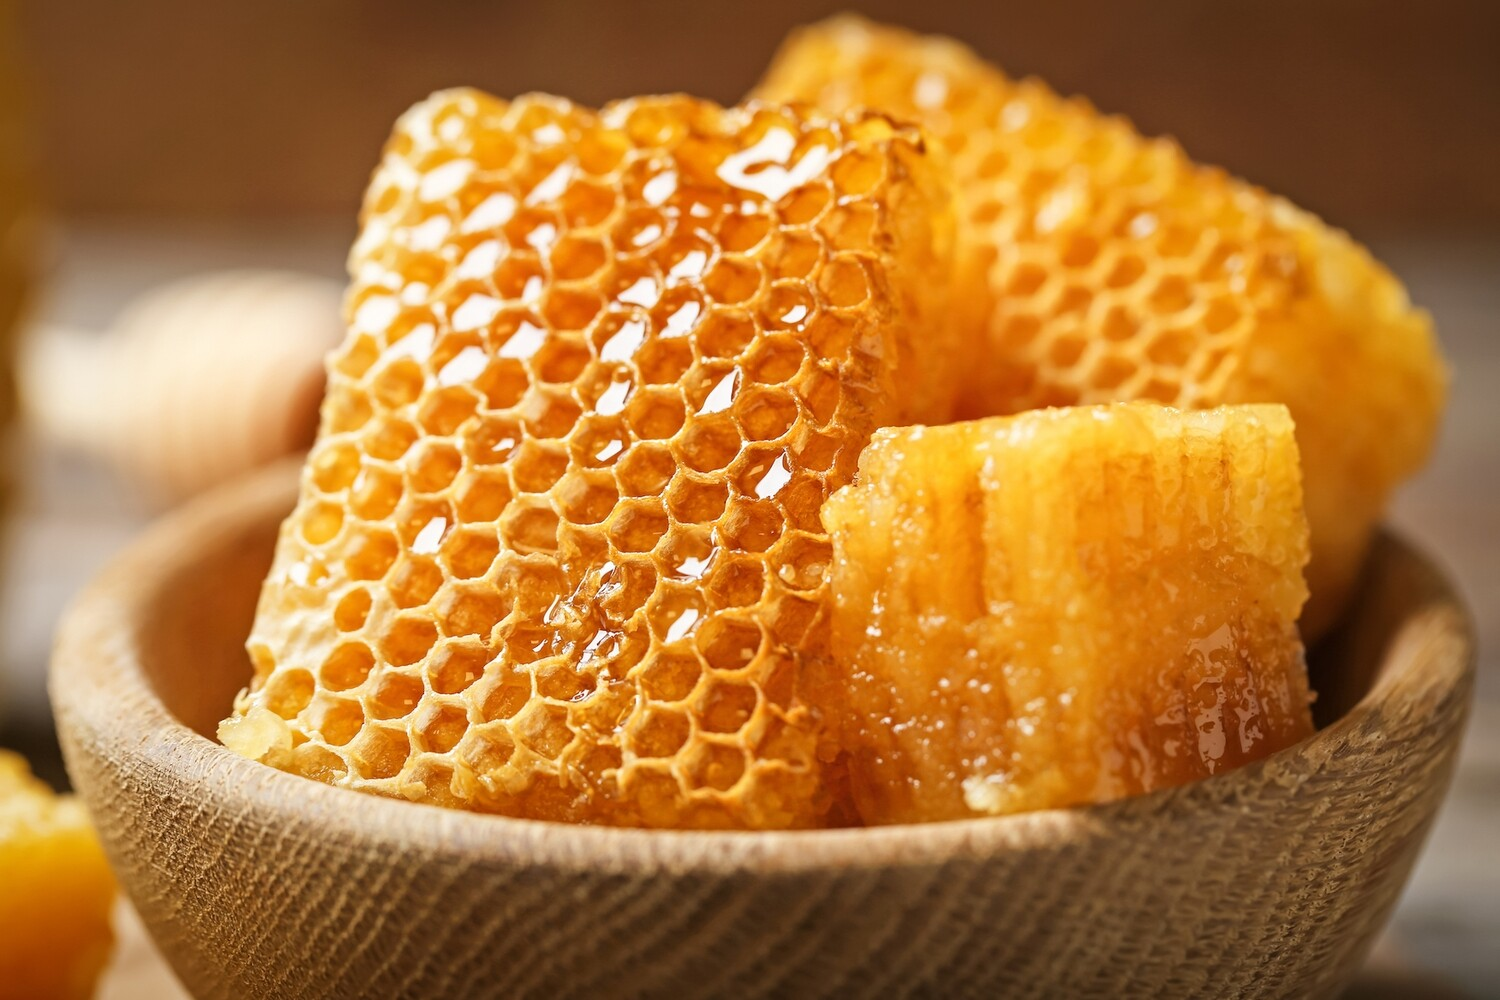 HoneyComb (Kg) - Made by Nature